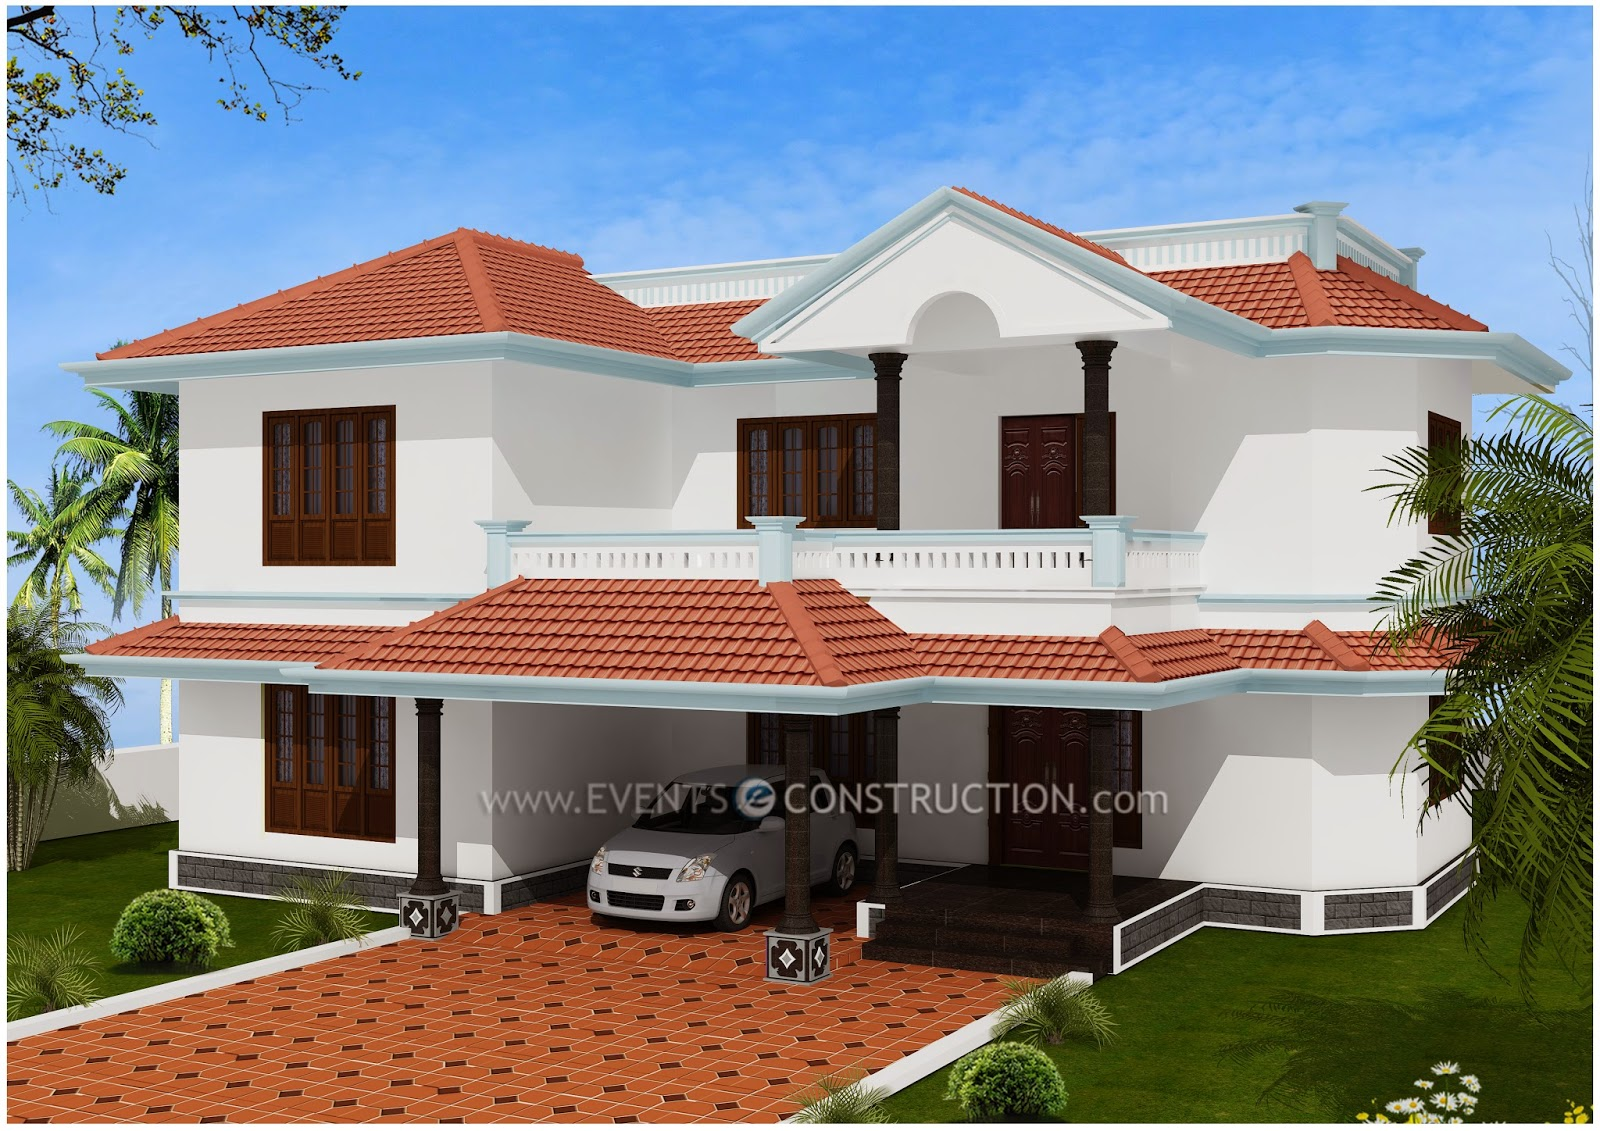 Evens construction pvt ltd simple kerala house design for Simple kerala home designs